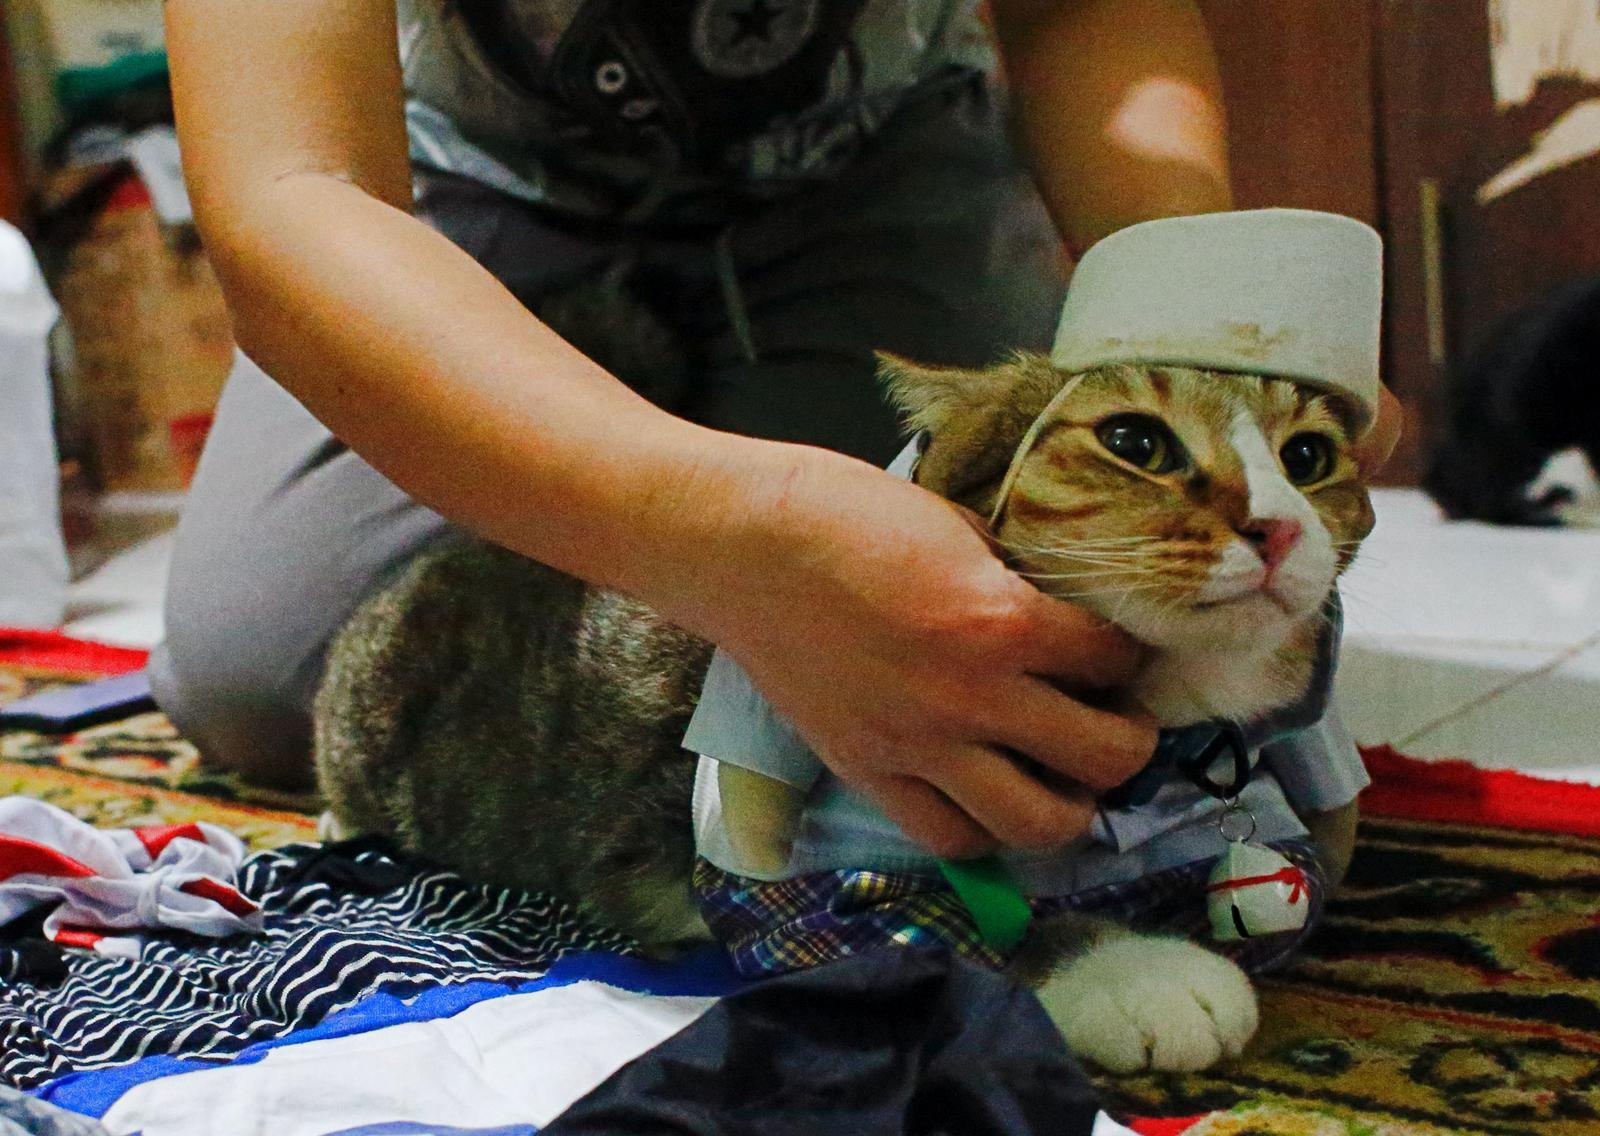 A cat is dressed in a cosplay costume in Jakarta, Indonesia, November 29, 2020. Picture taken November 29, 2020. Photo: Reuters